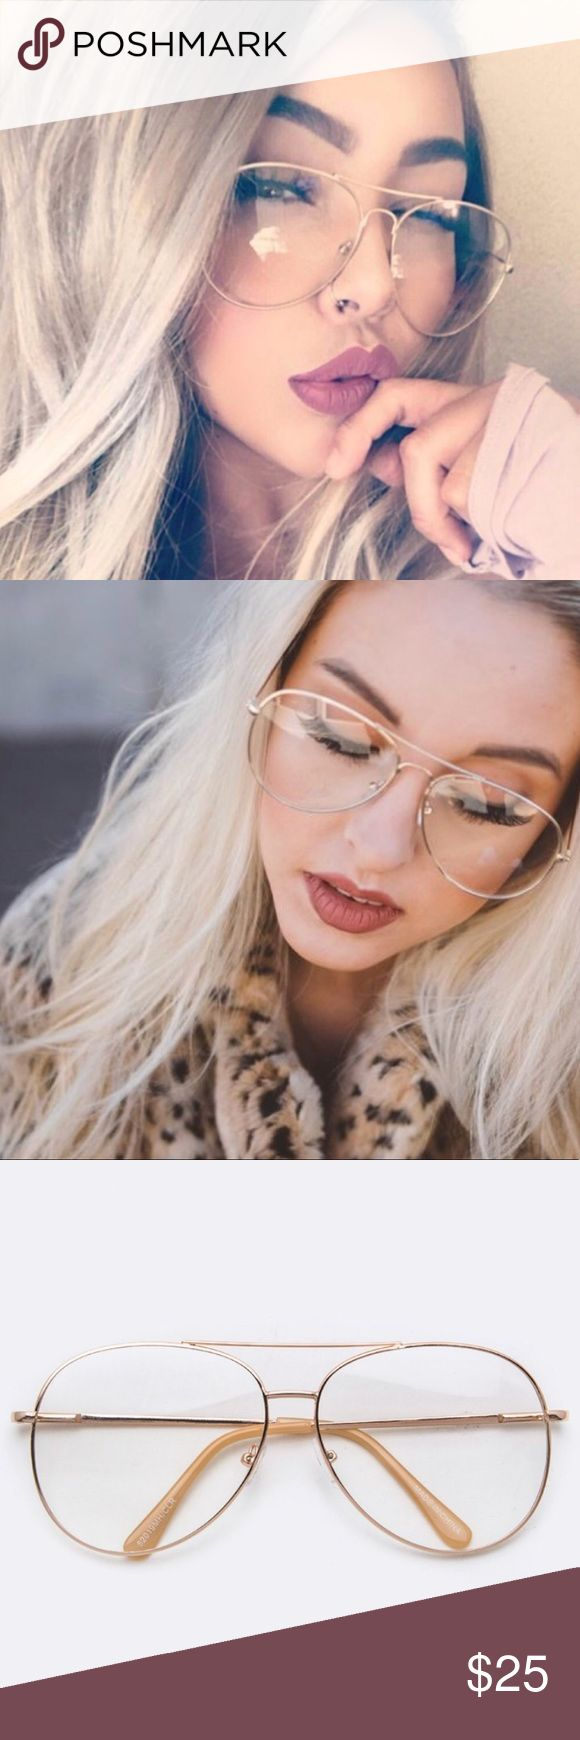 20% OFF 2+trendy gold aviator glasses clear lens Adorable clear lens with gold frame aviators WILA Accessories Sunglasses